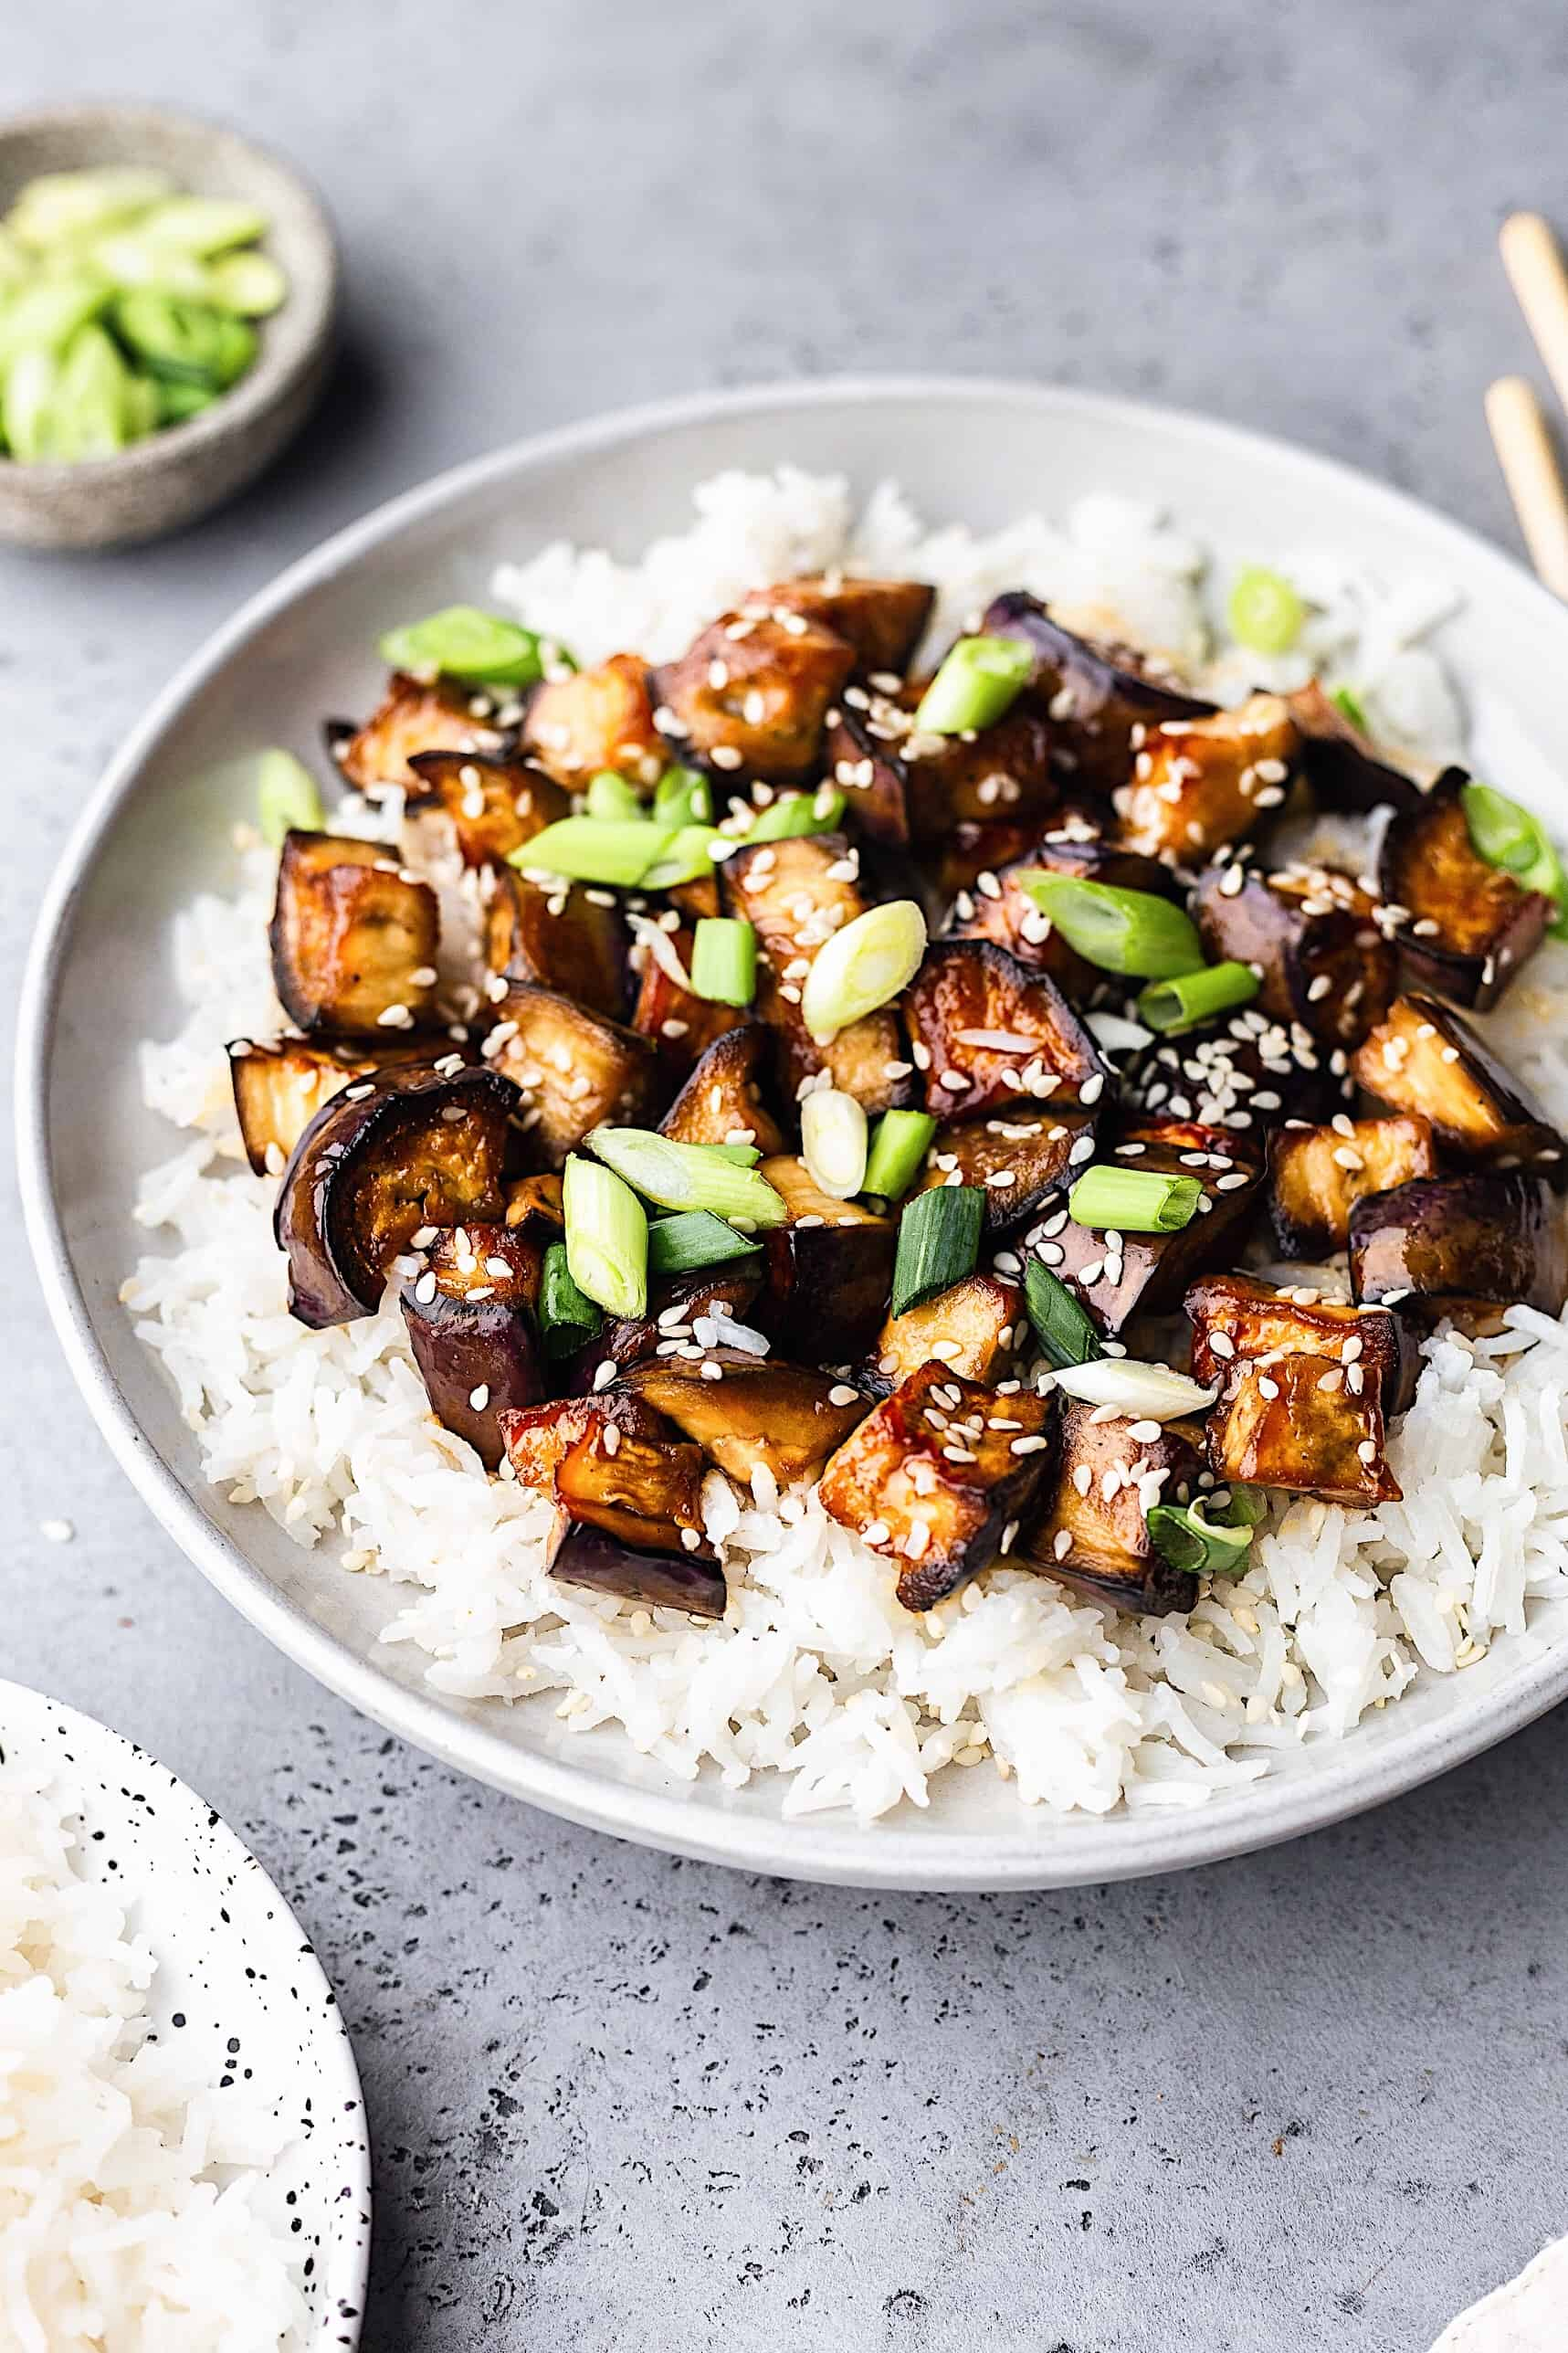 Vegan Marinated Teriyaki Eggplant with Rice #vegan #recipe #japanese #teriyaki #eggplant #aubergine